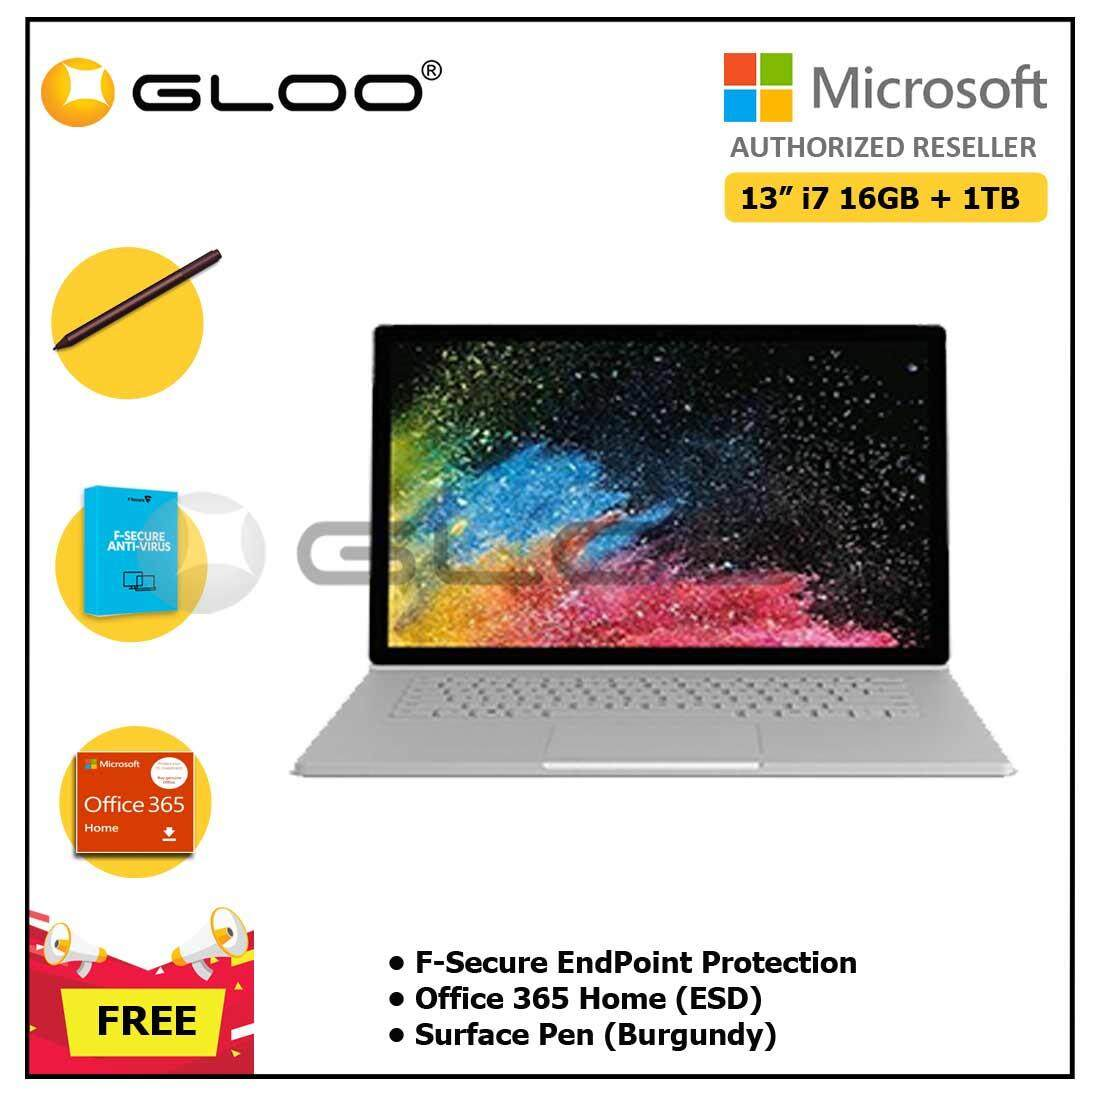 """Microsoft Surface Book 2 13"""" Core i7/16GB RAM - 1TB + F-Secure EndPoint Protection + Office 365 Home ESD + Pen Burgundy"""